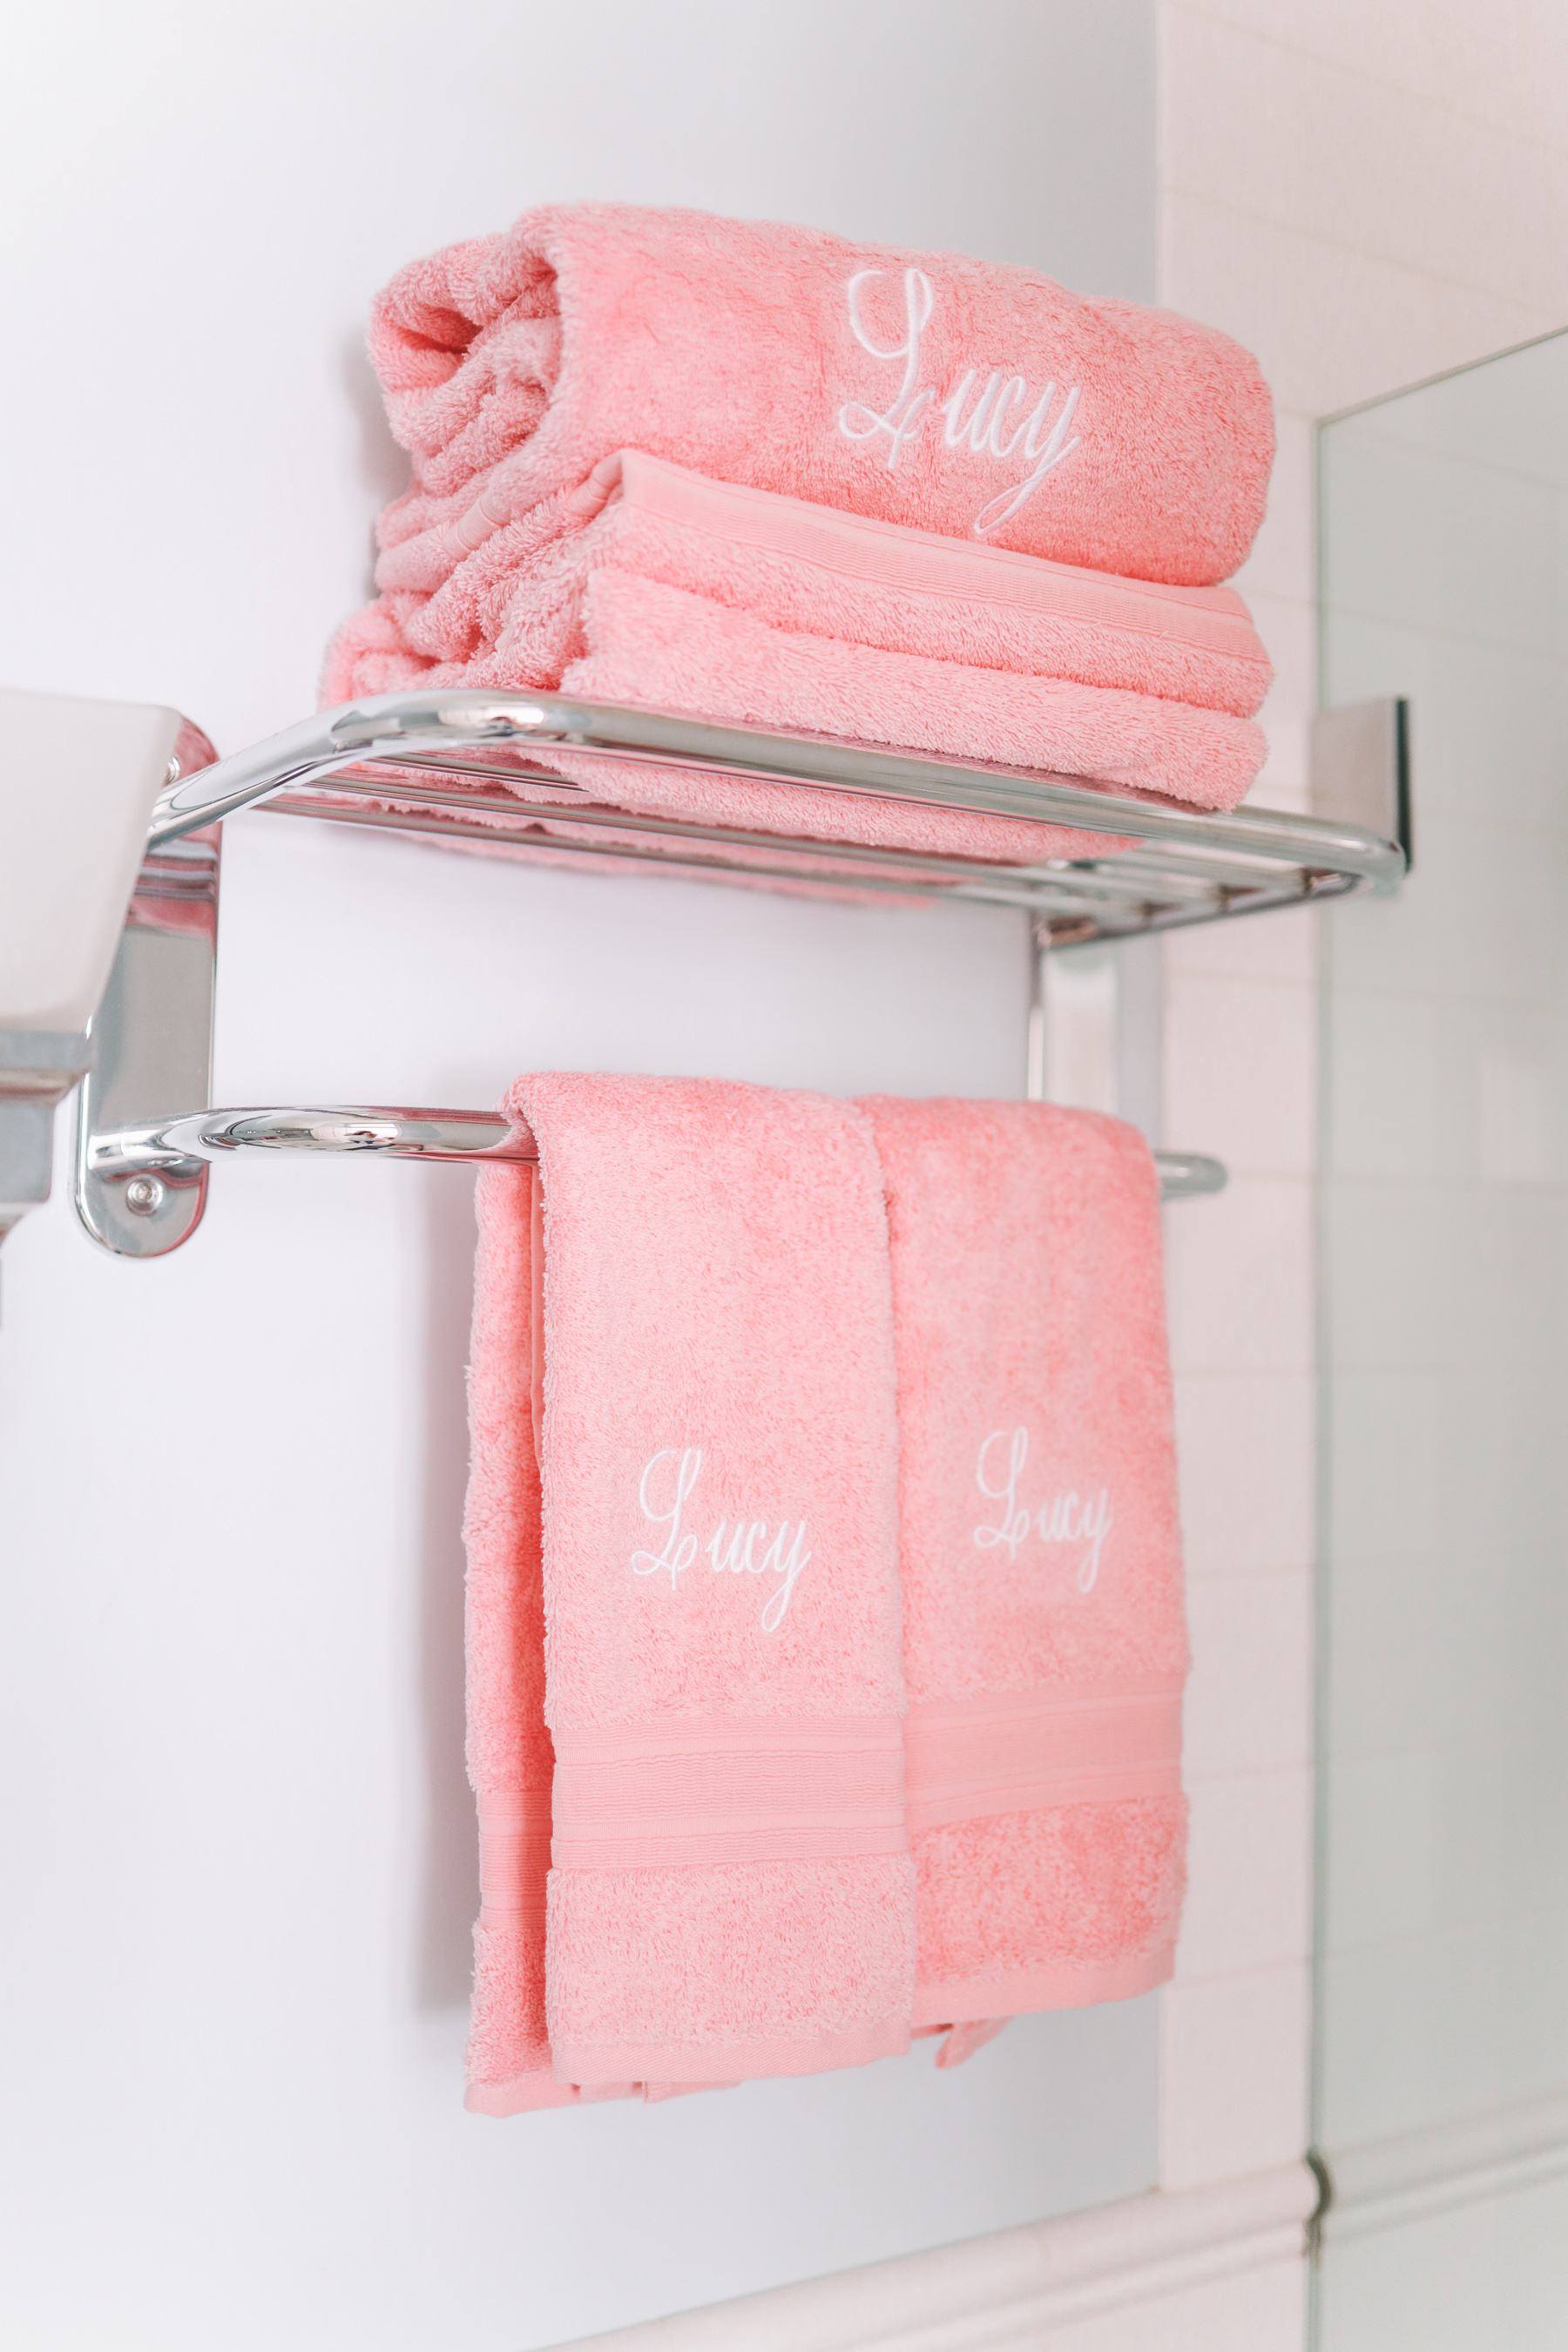 Monogrammed pink towels with the name Lucy